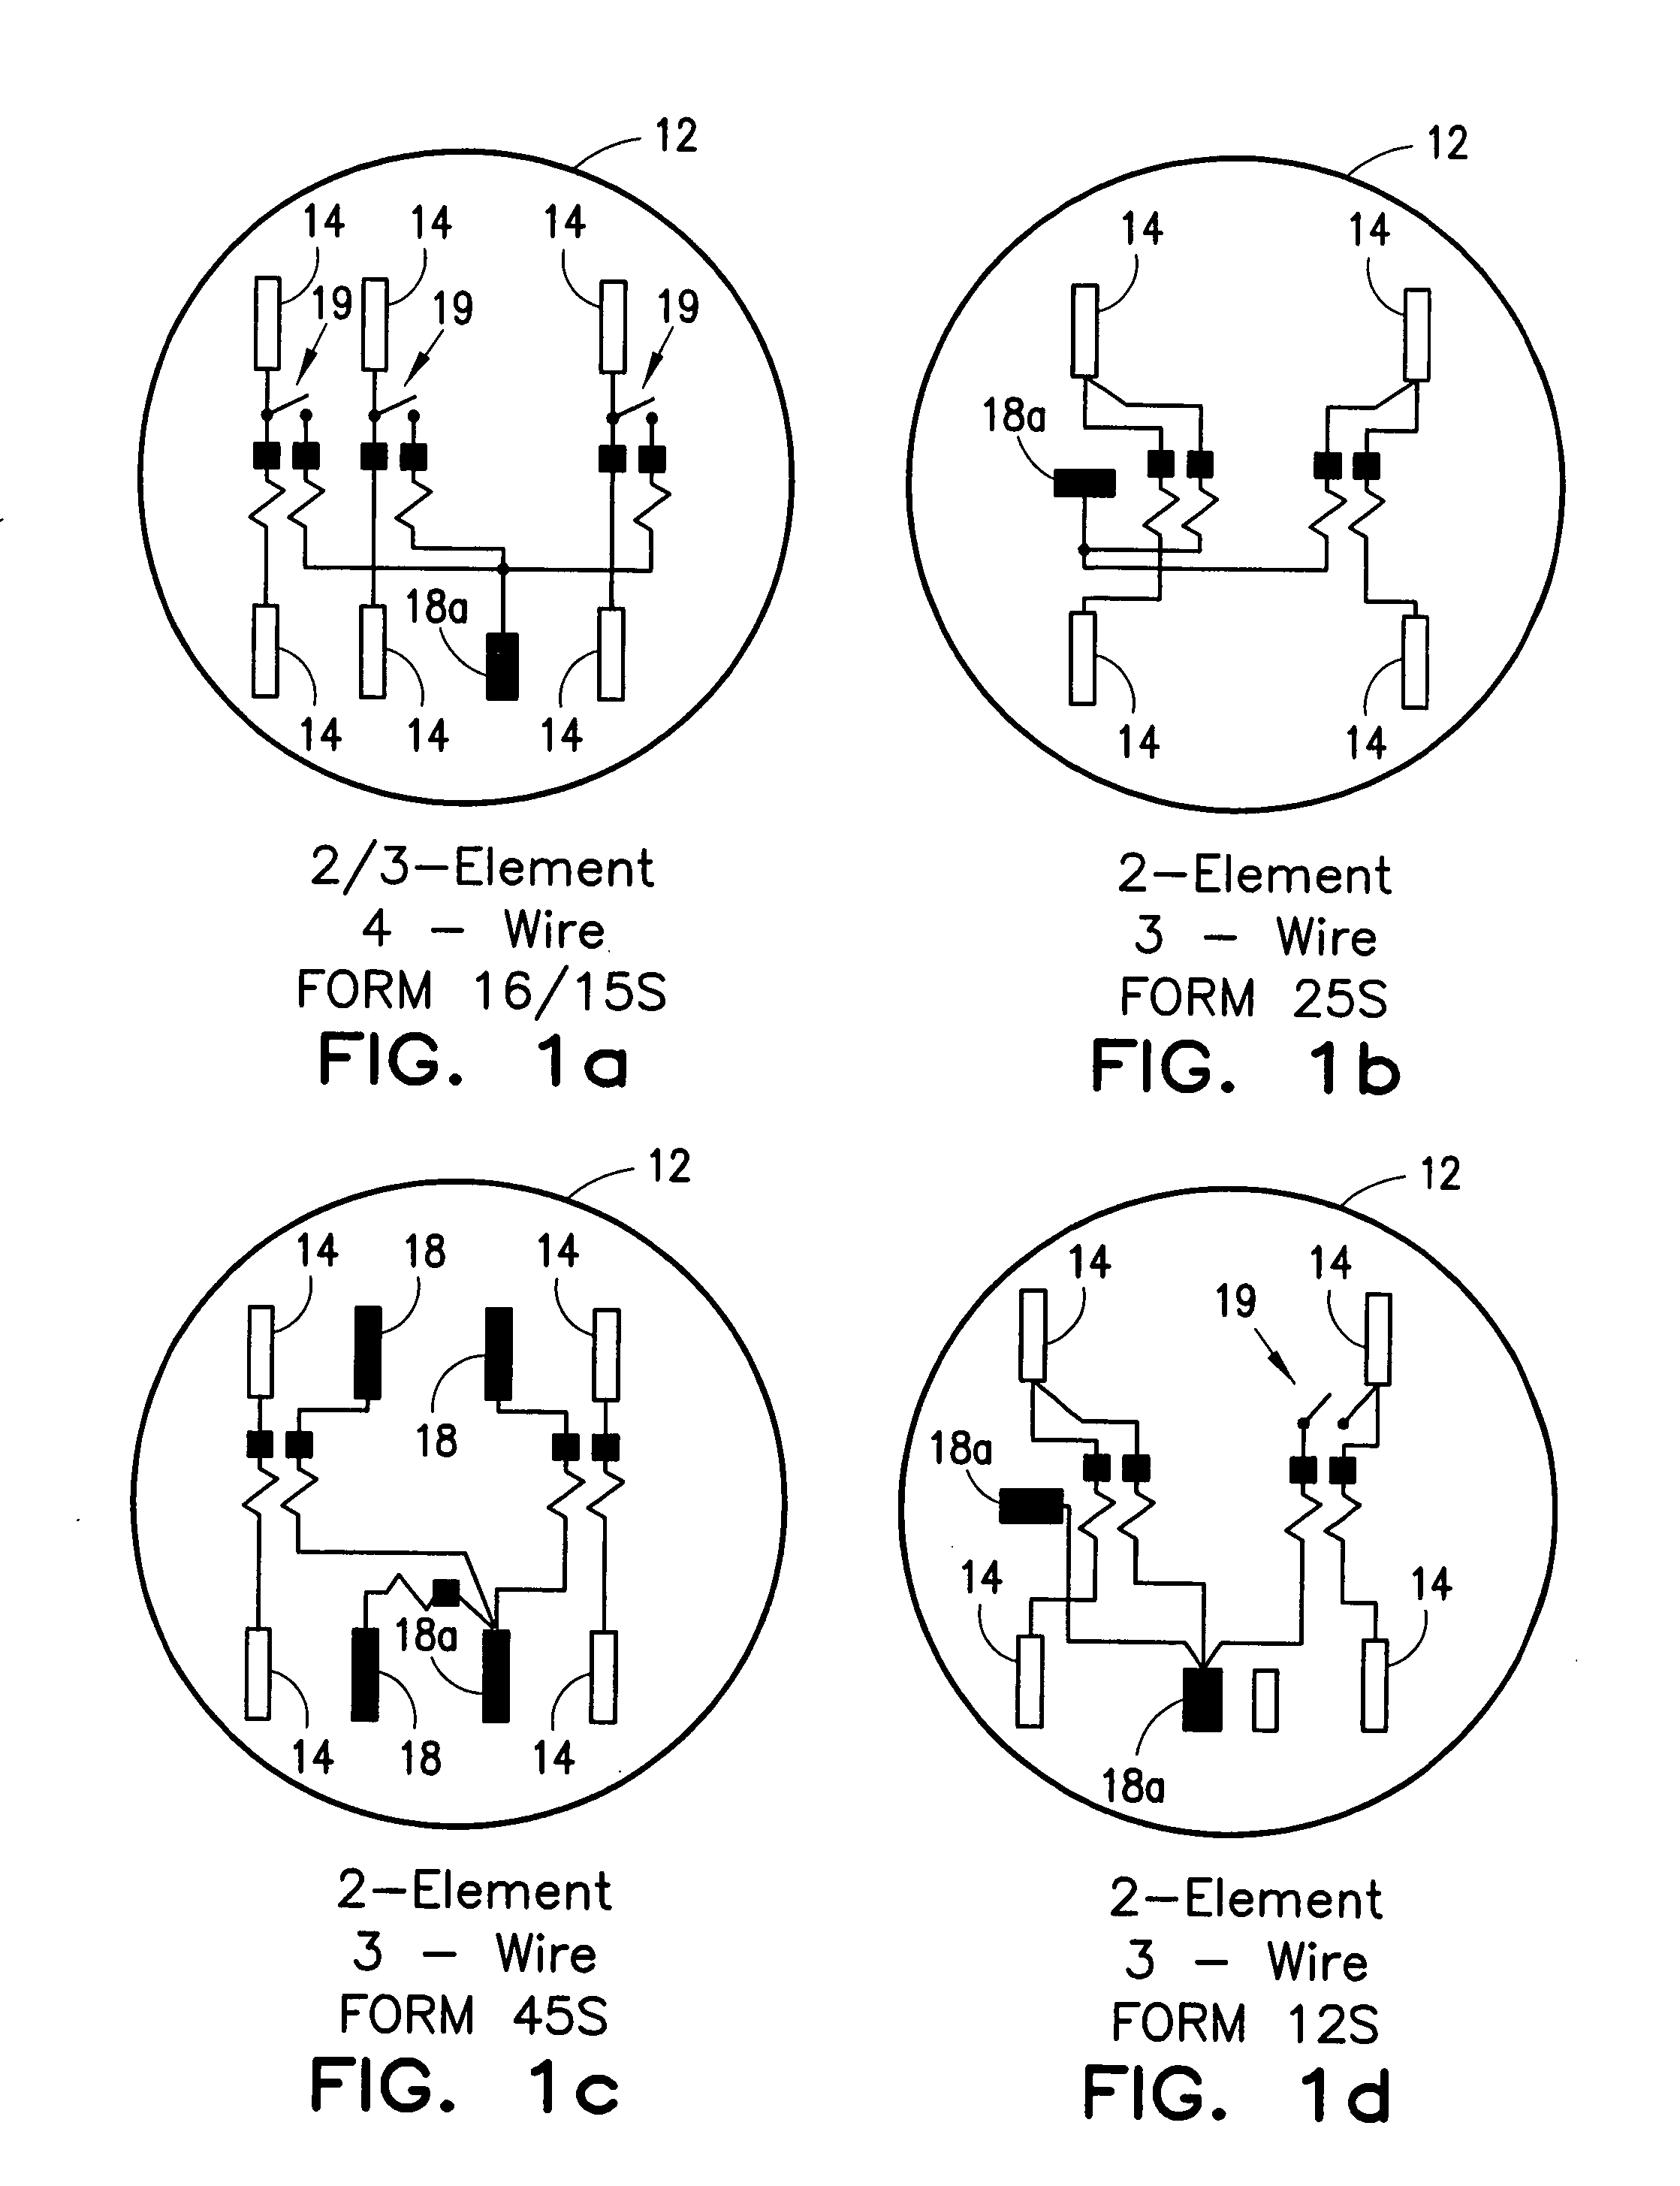 Electric Meter Forms Diagrams